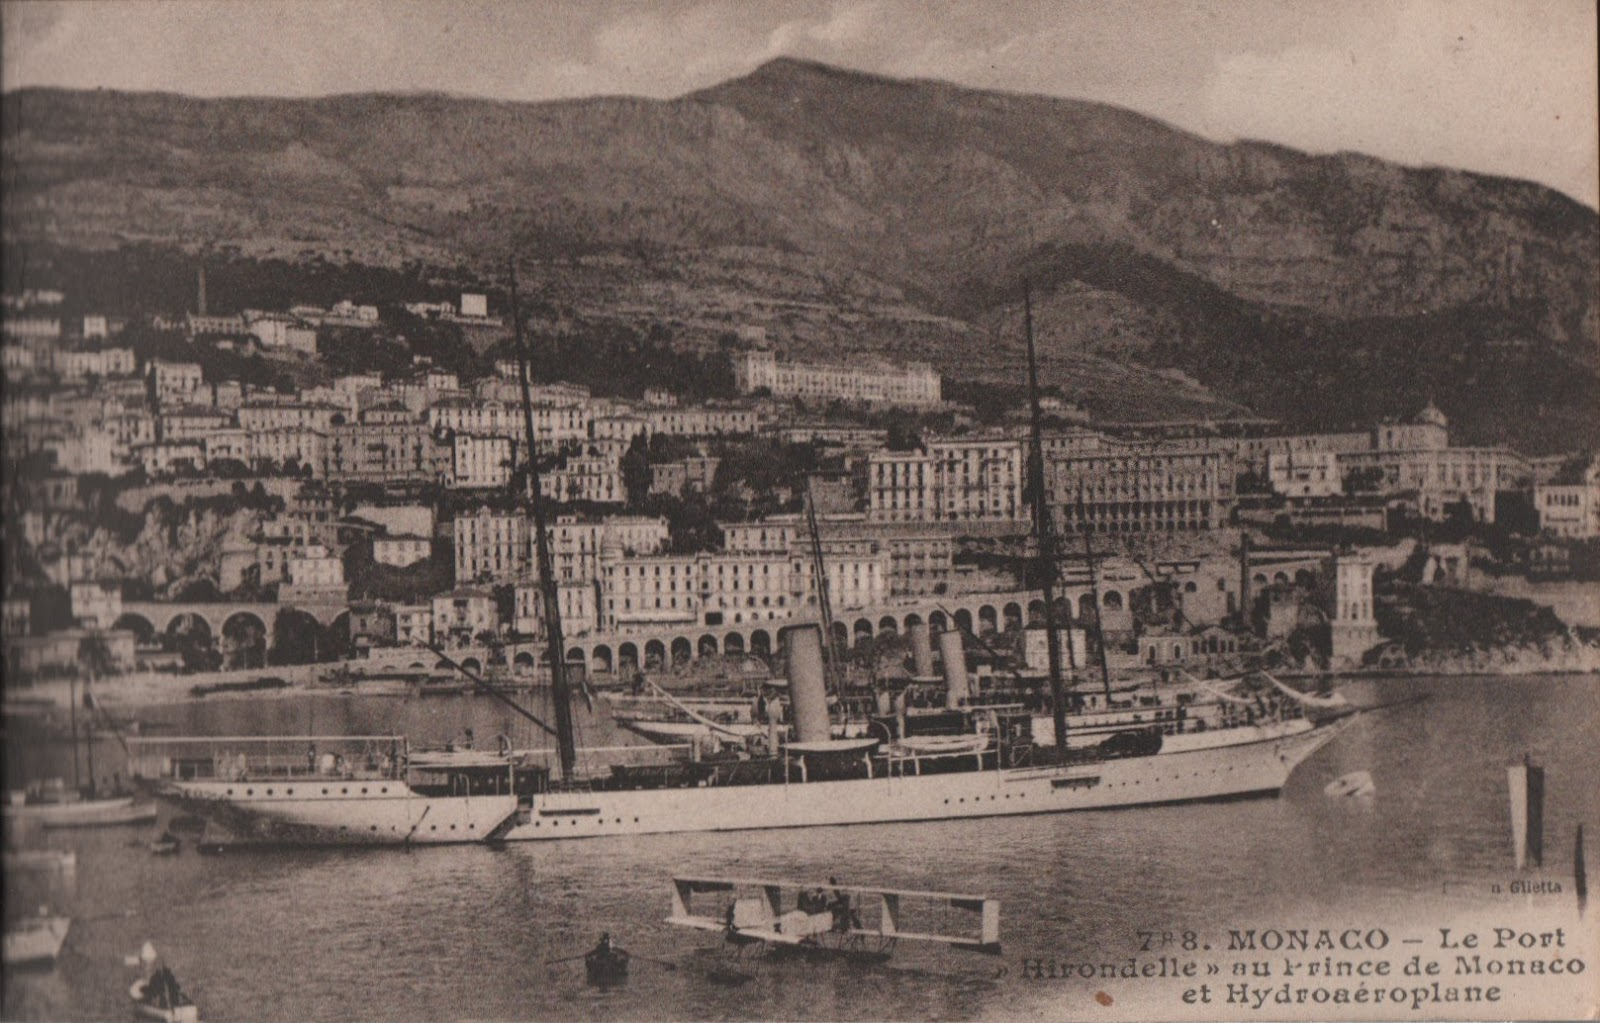 vintage postcard of the port of Monaco with hirondelle yacht and a seaplane